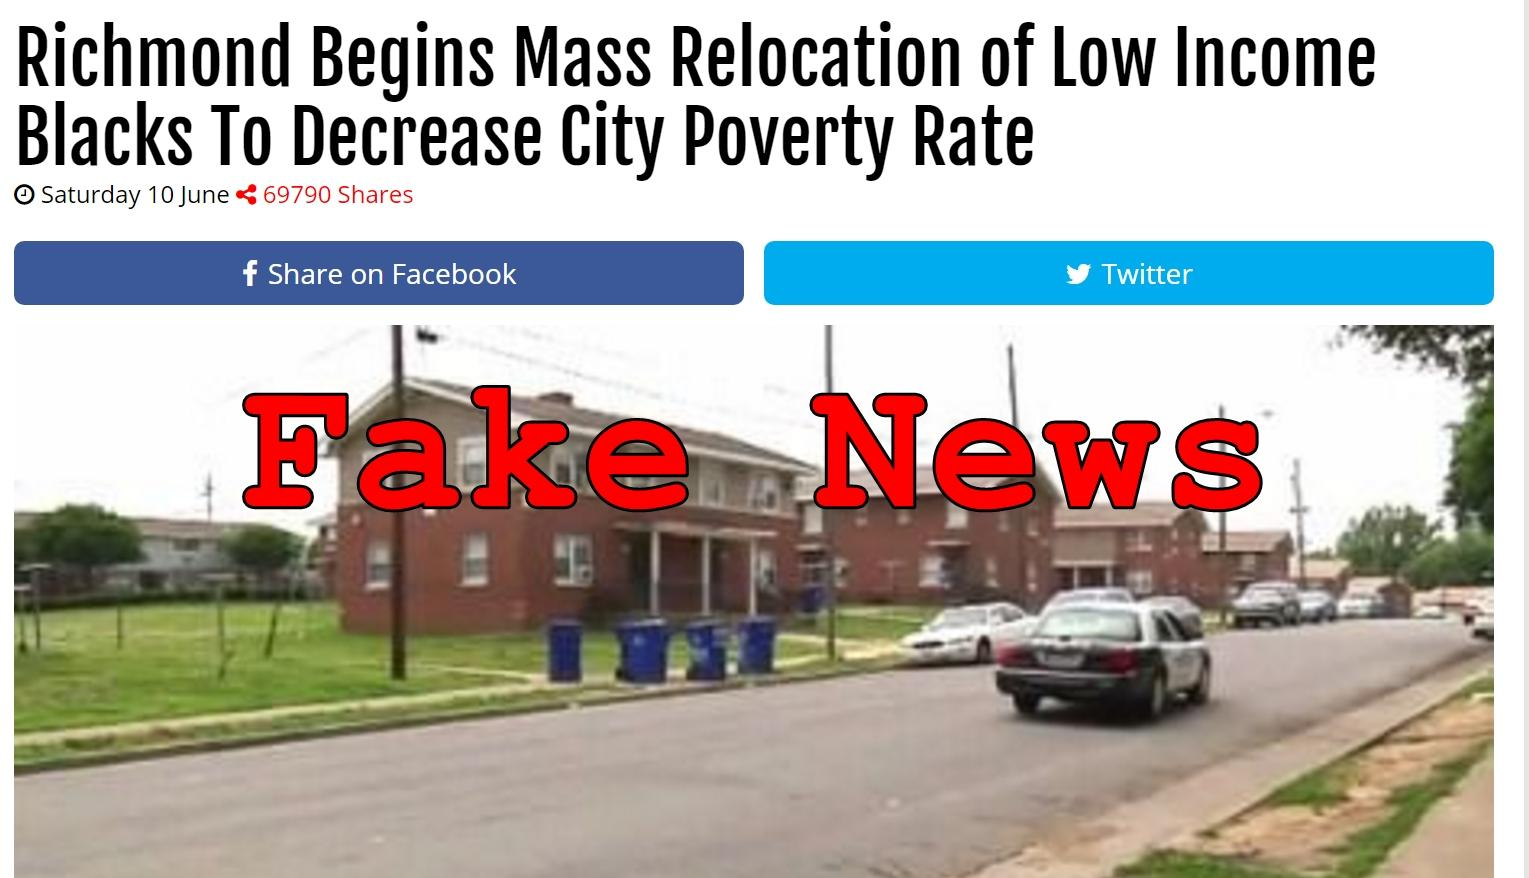 Fake News: Richmond Did NOT Begin Mass Relocation of Low Income Blacks To Decrease City Poverty Rate